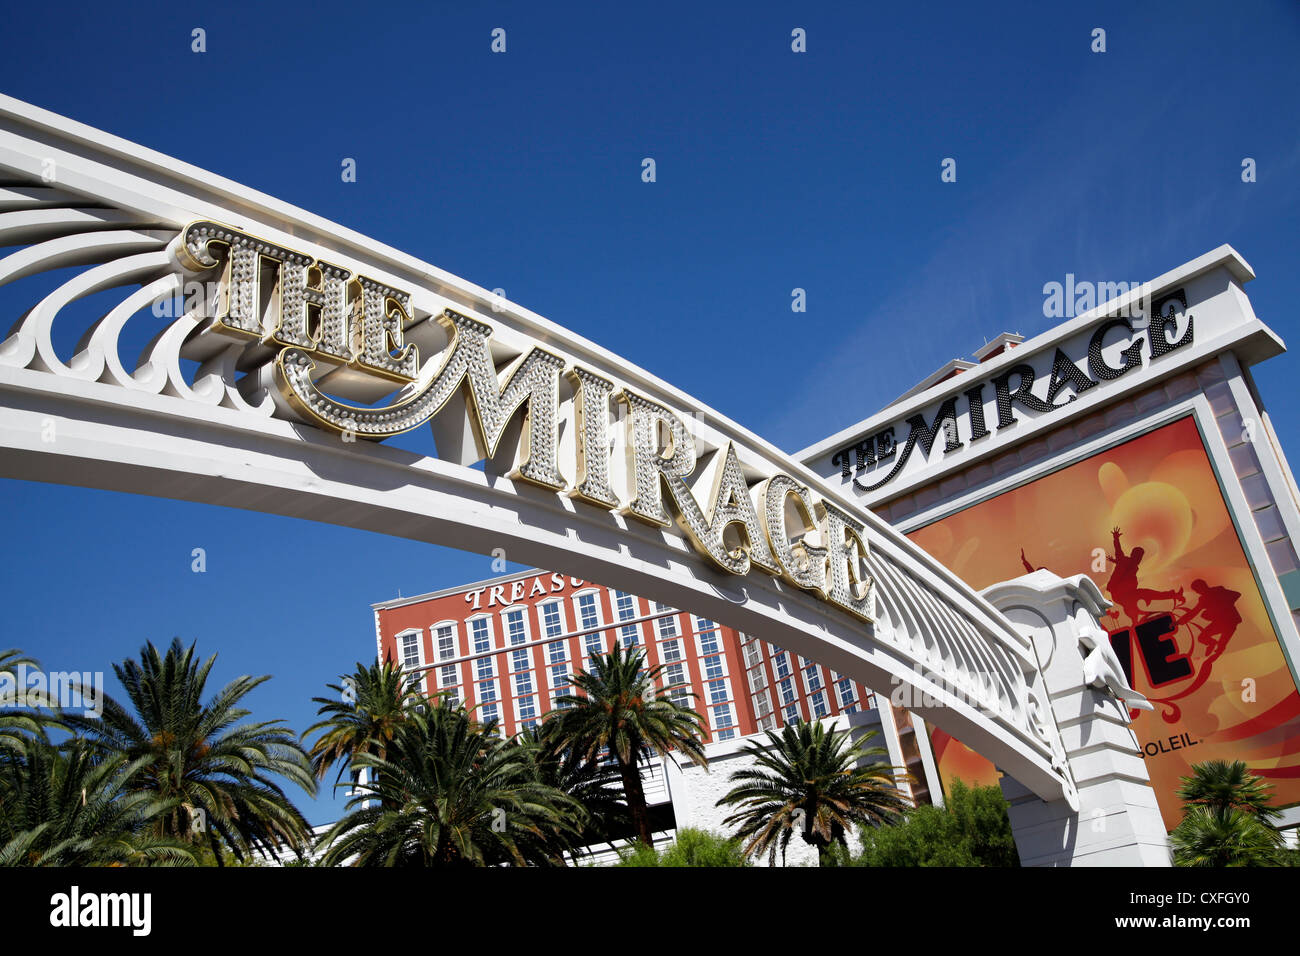 Entry Driveway Arch at the Mirage Hotel, Las Vegas, NV, USA - Stock Image